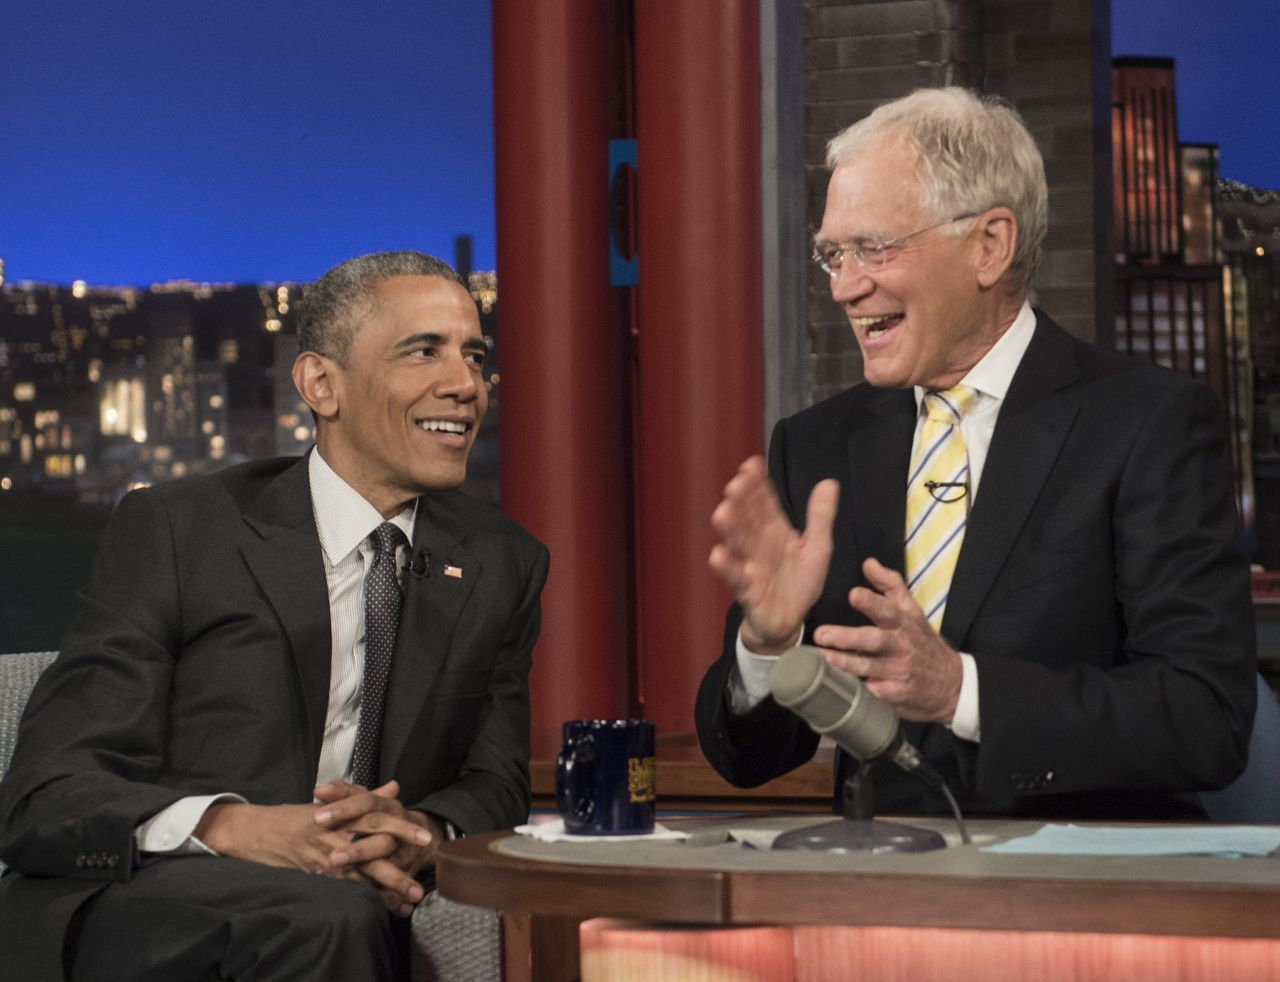 The End Of An Era: Looking Back On Letterman's Legacy